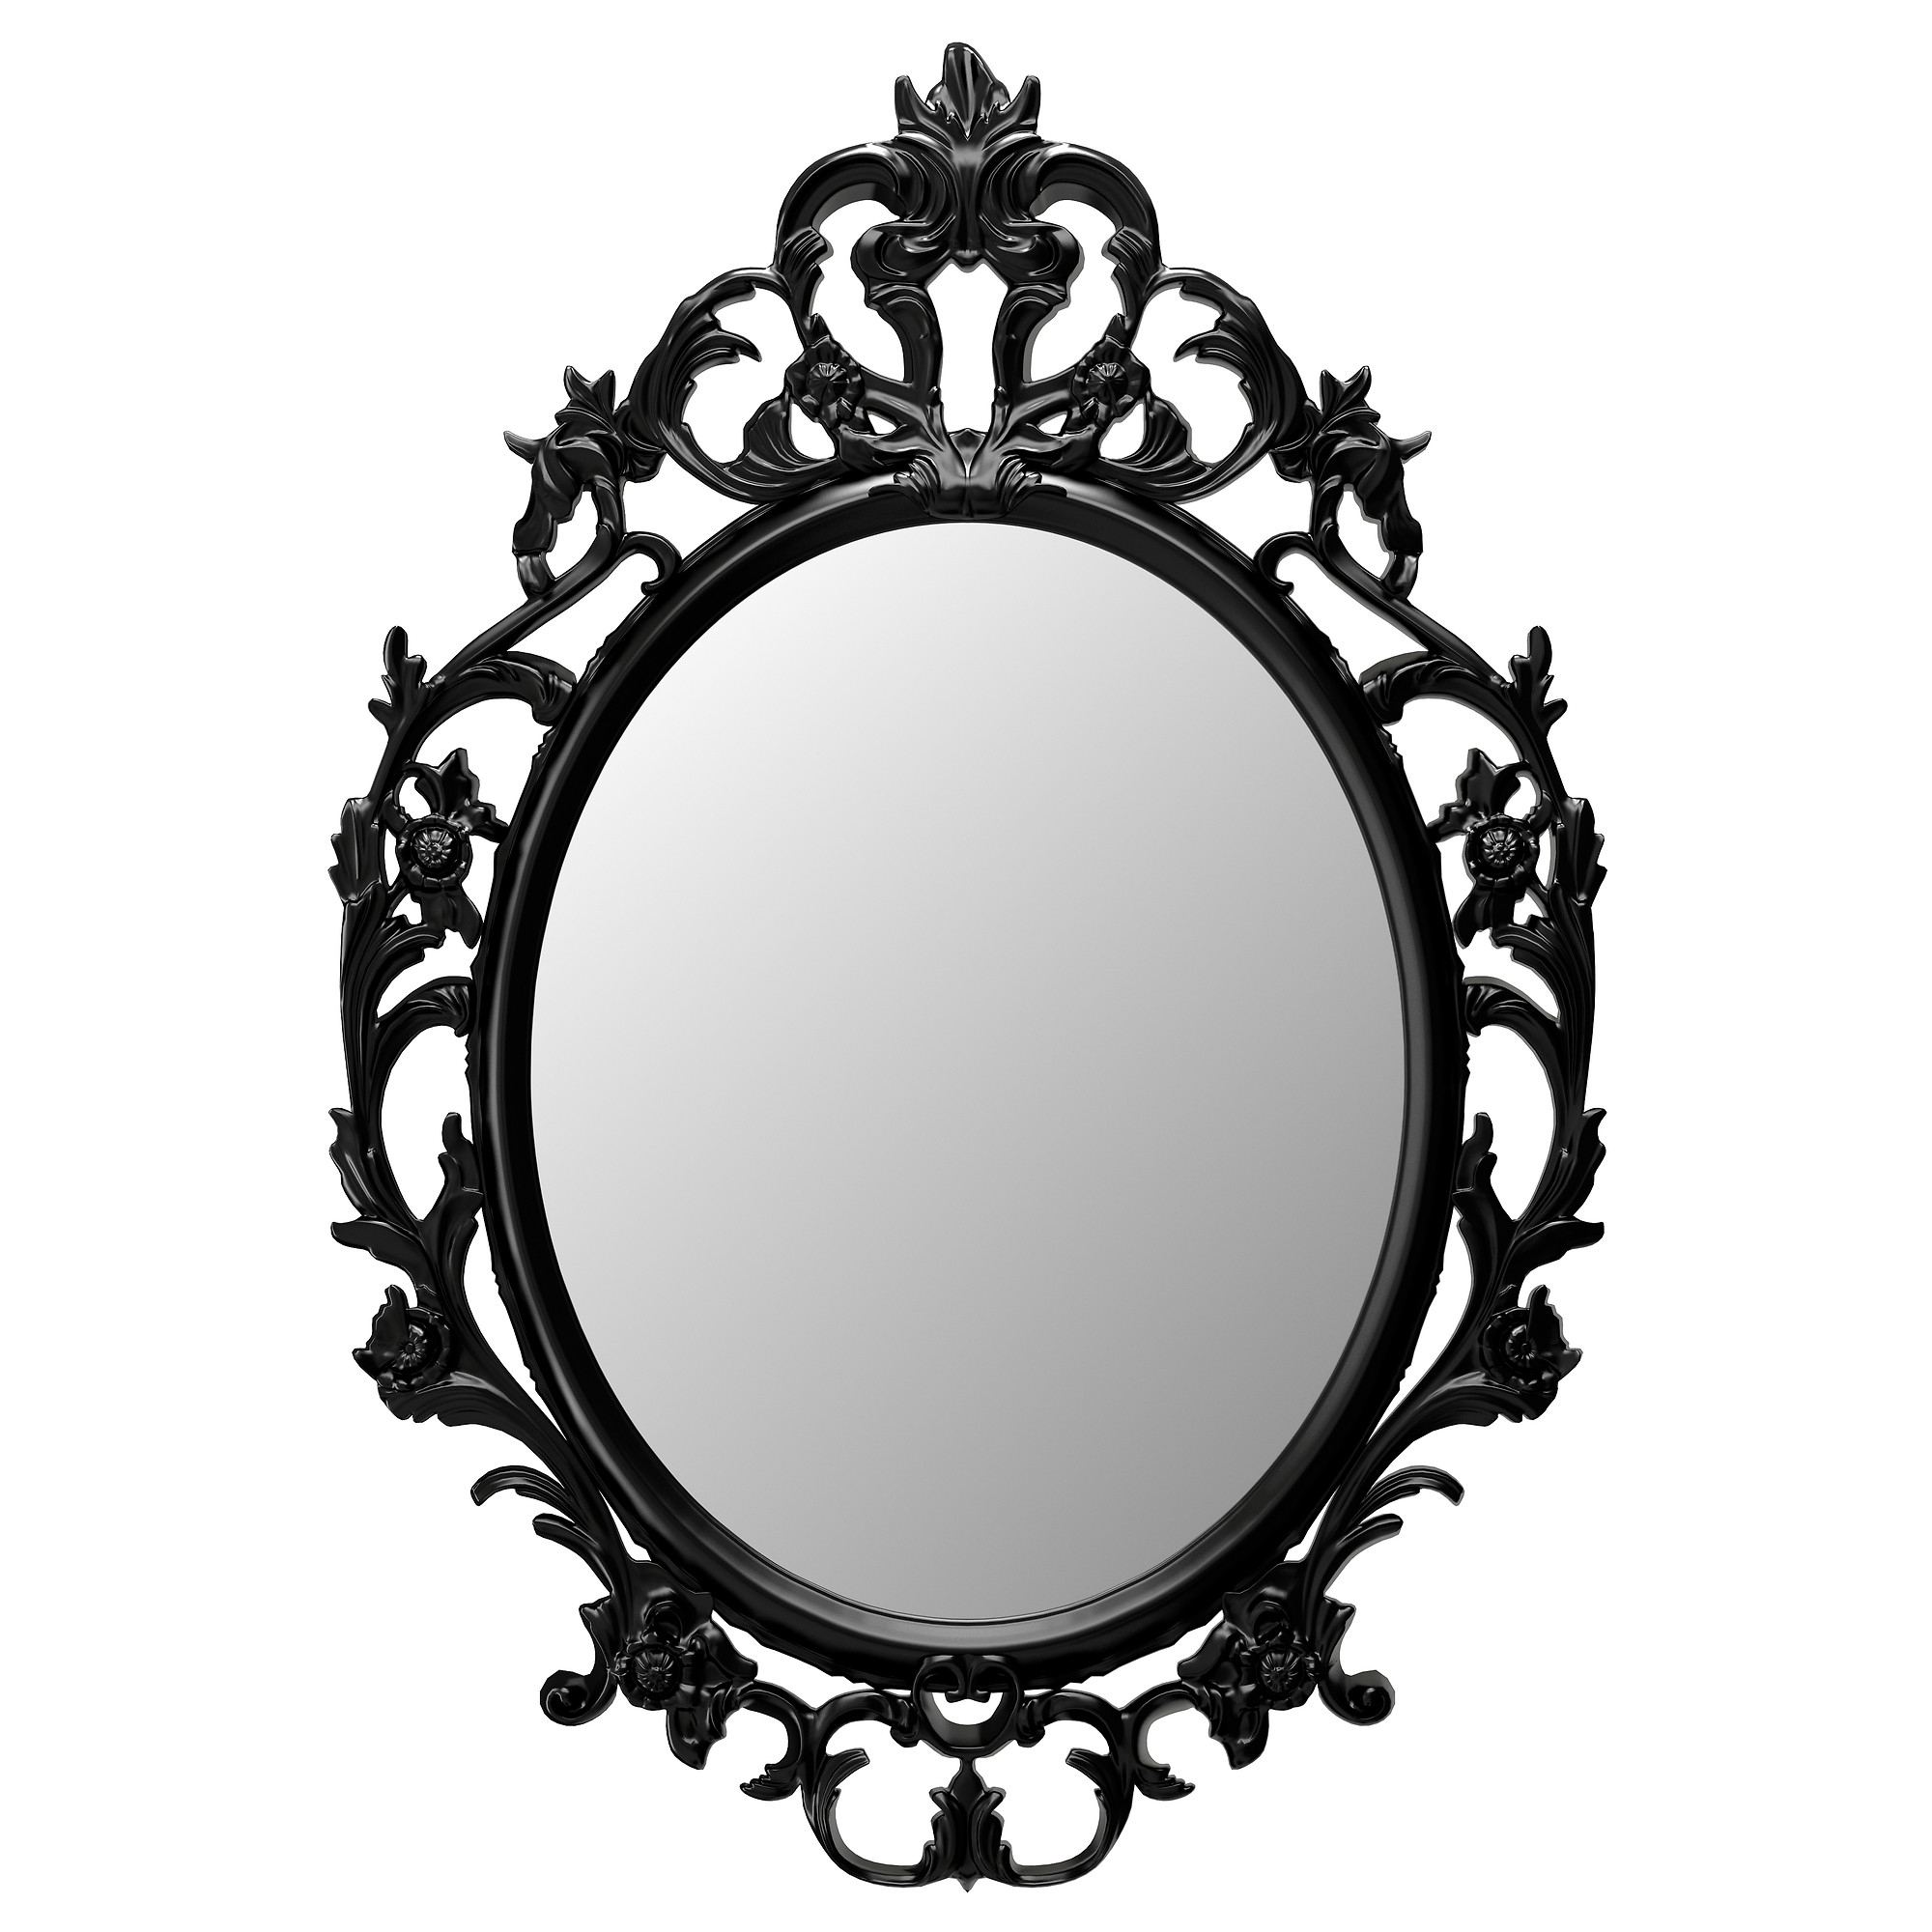 Ung Drill Mirror Ovalblack 59×85 Cm Ikea Within Black Baroque Mirror (Image 14 of 15)